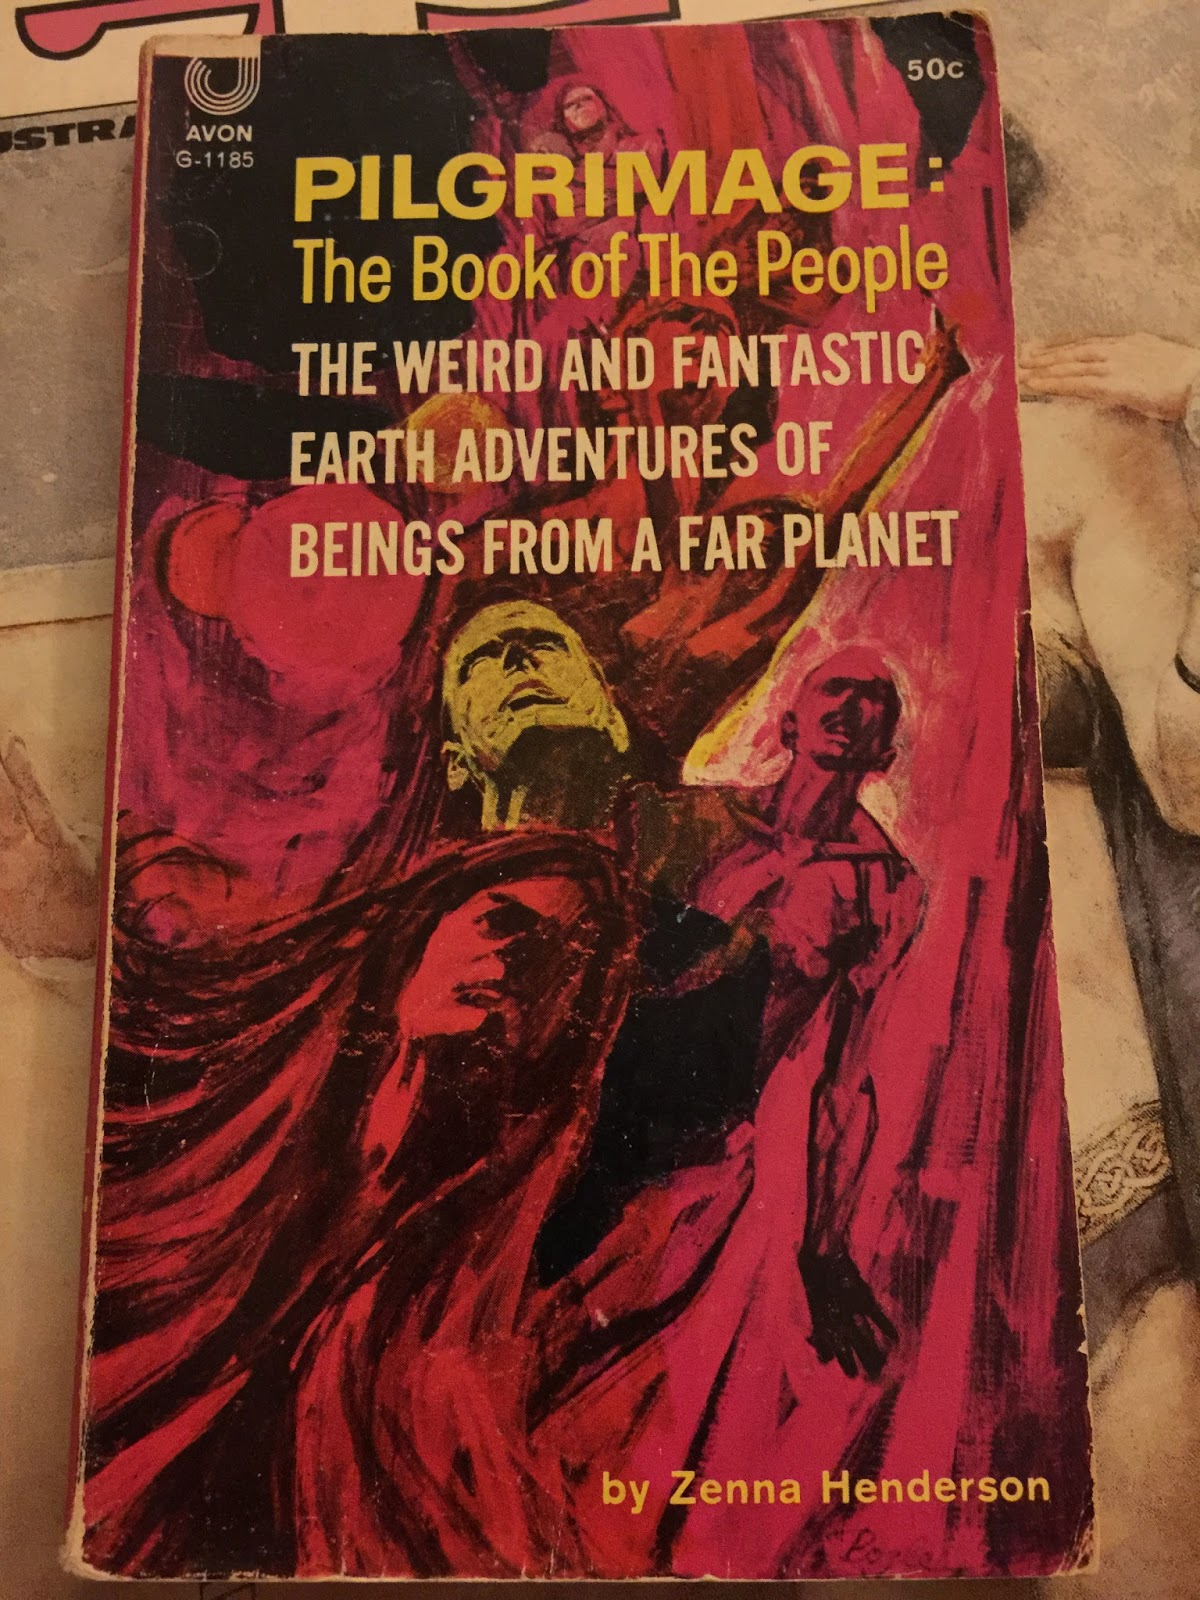 First Edition Fantasy Vintage Science Fiction Book Covers -6734